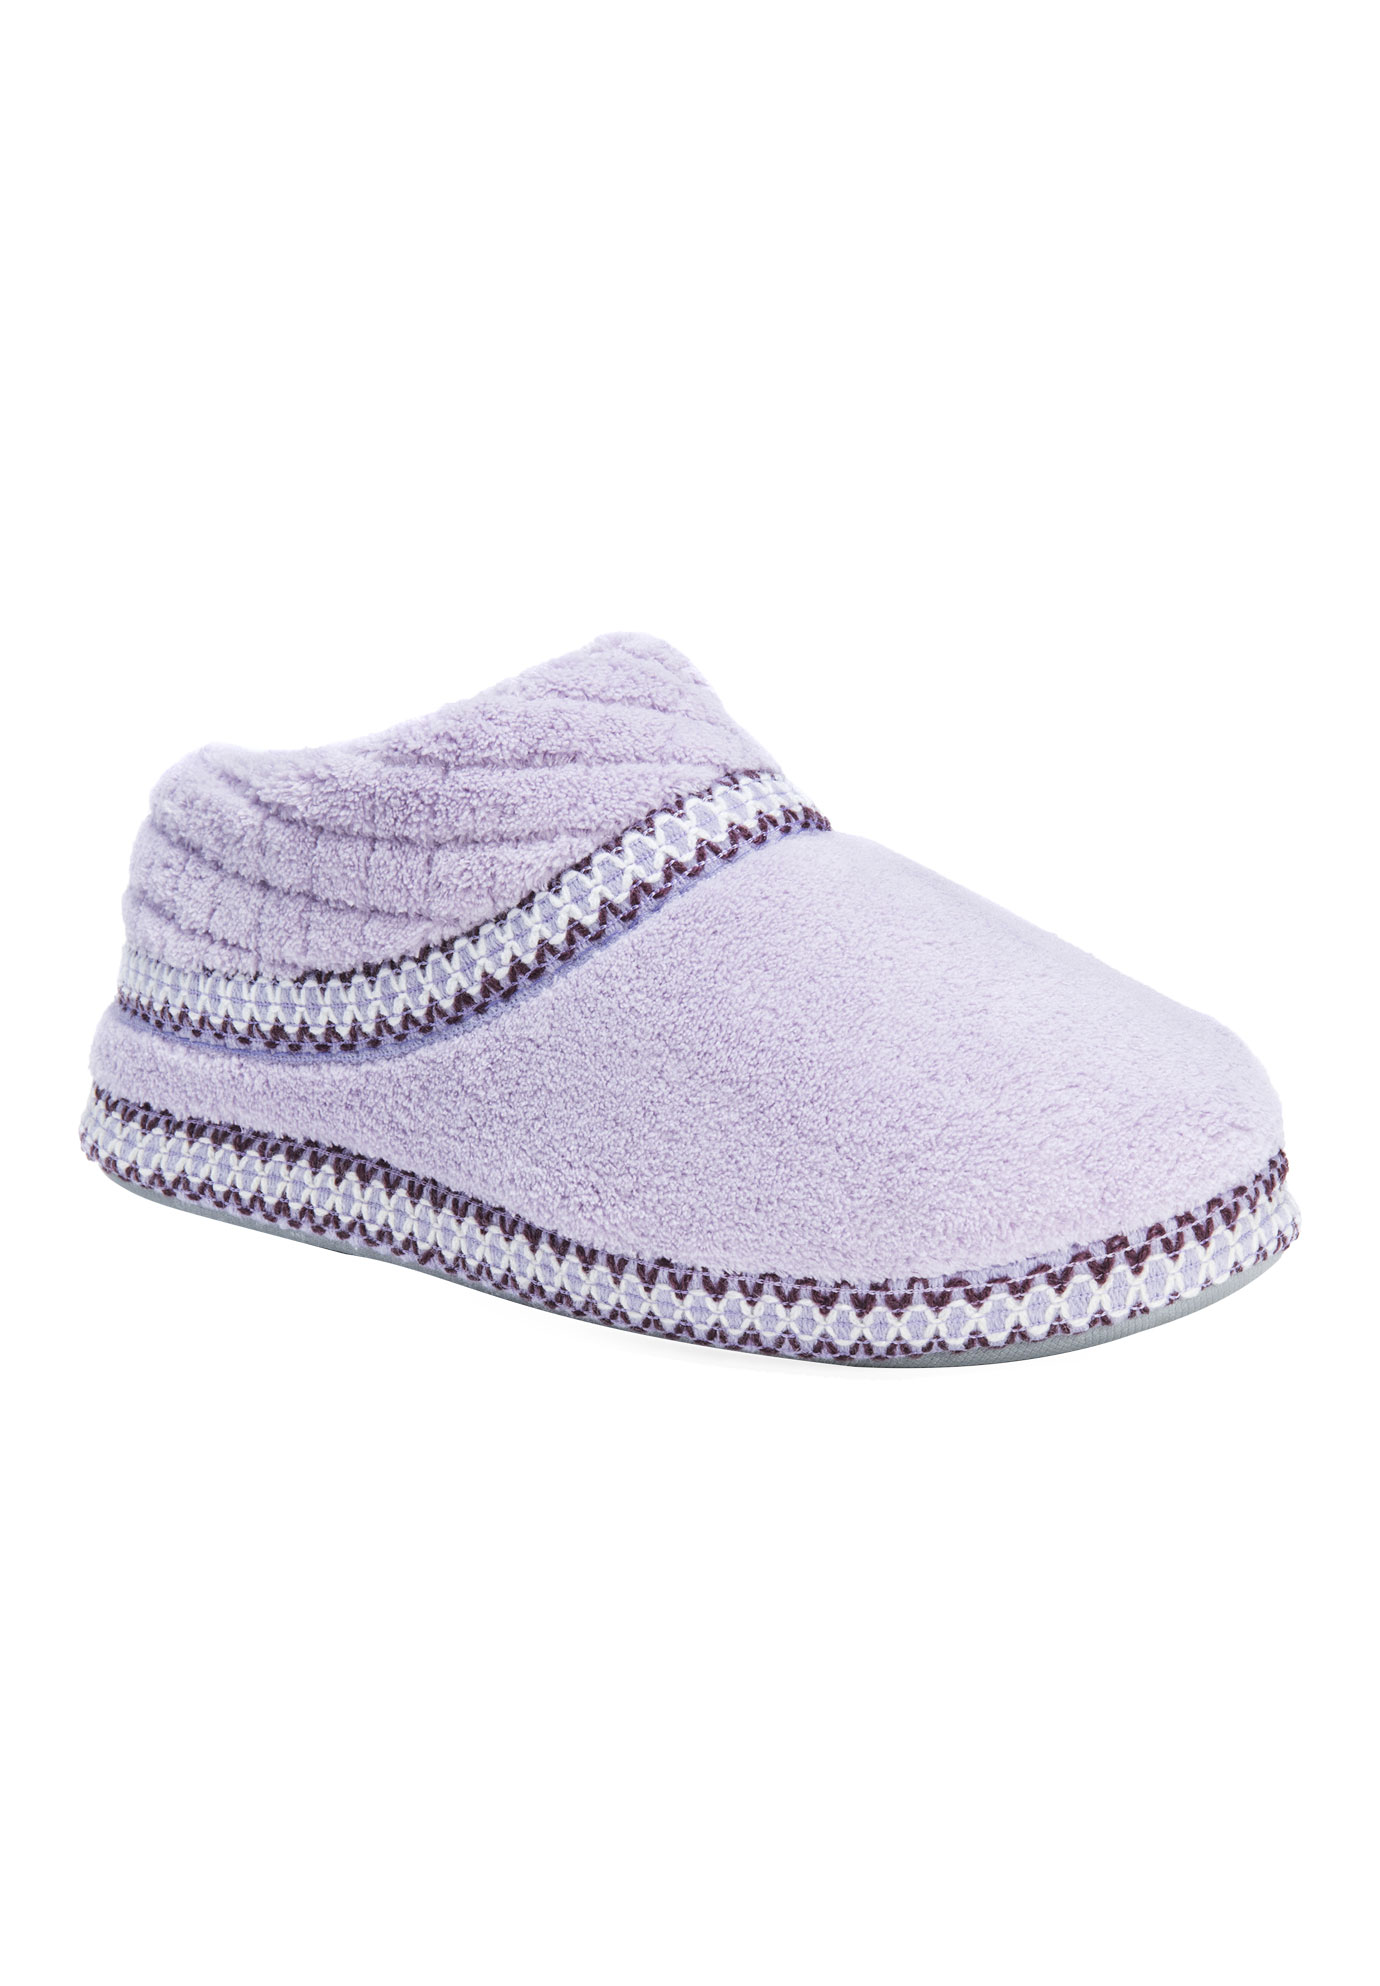 Rita Full Foot Slippers by Muk Luks®, HYDRANGEA